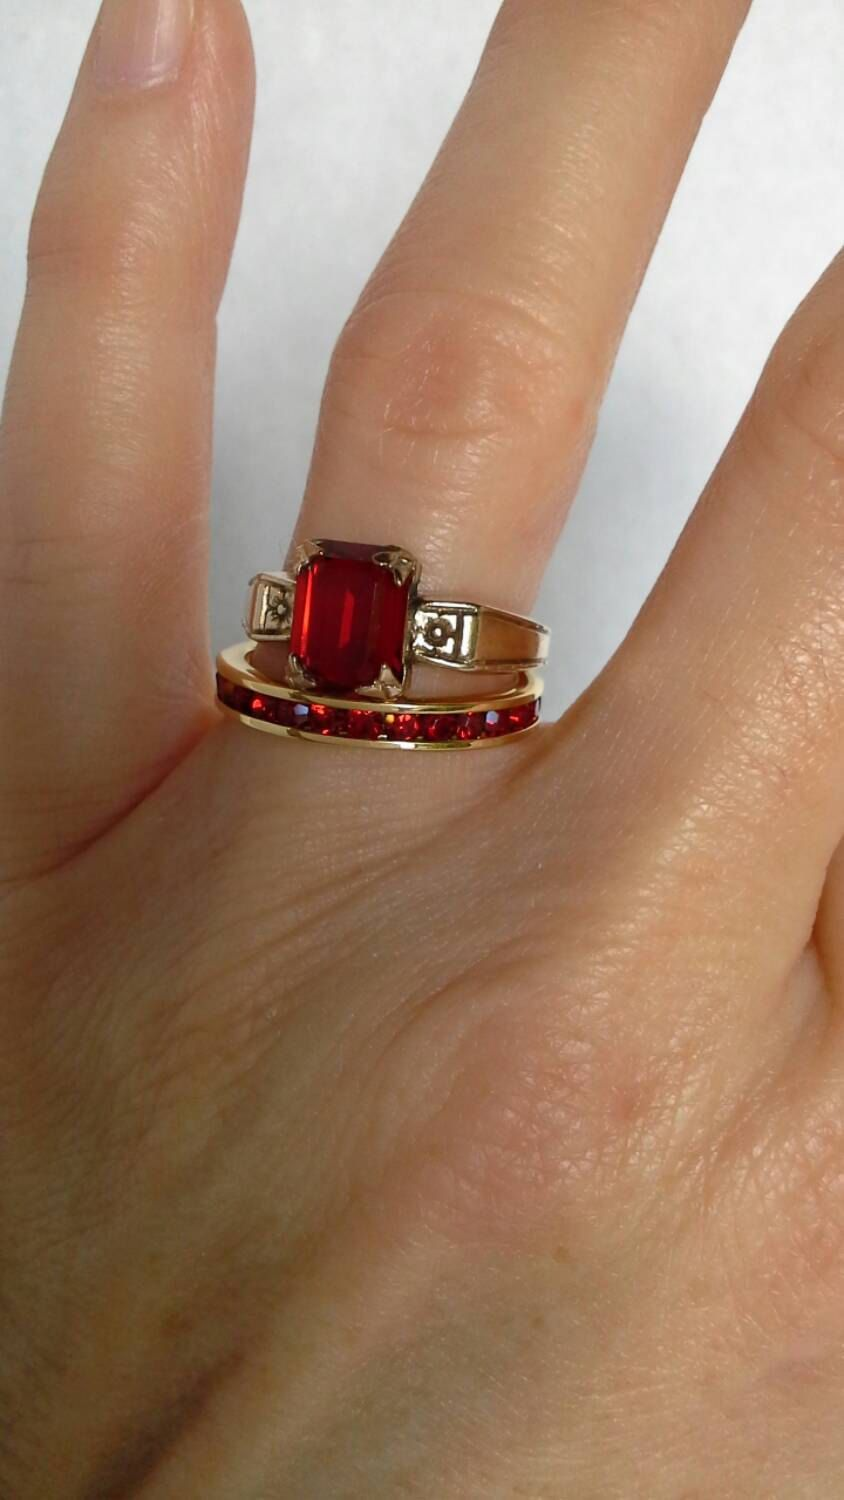 Vintage Gold Plated Red Stone Rings Faux Ruby Wedding Set Anniversary Band Kidgem Ring Square By Beebleweezy On Etsy